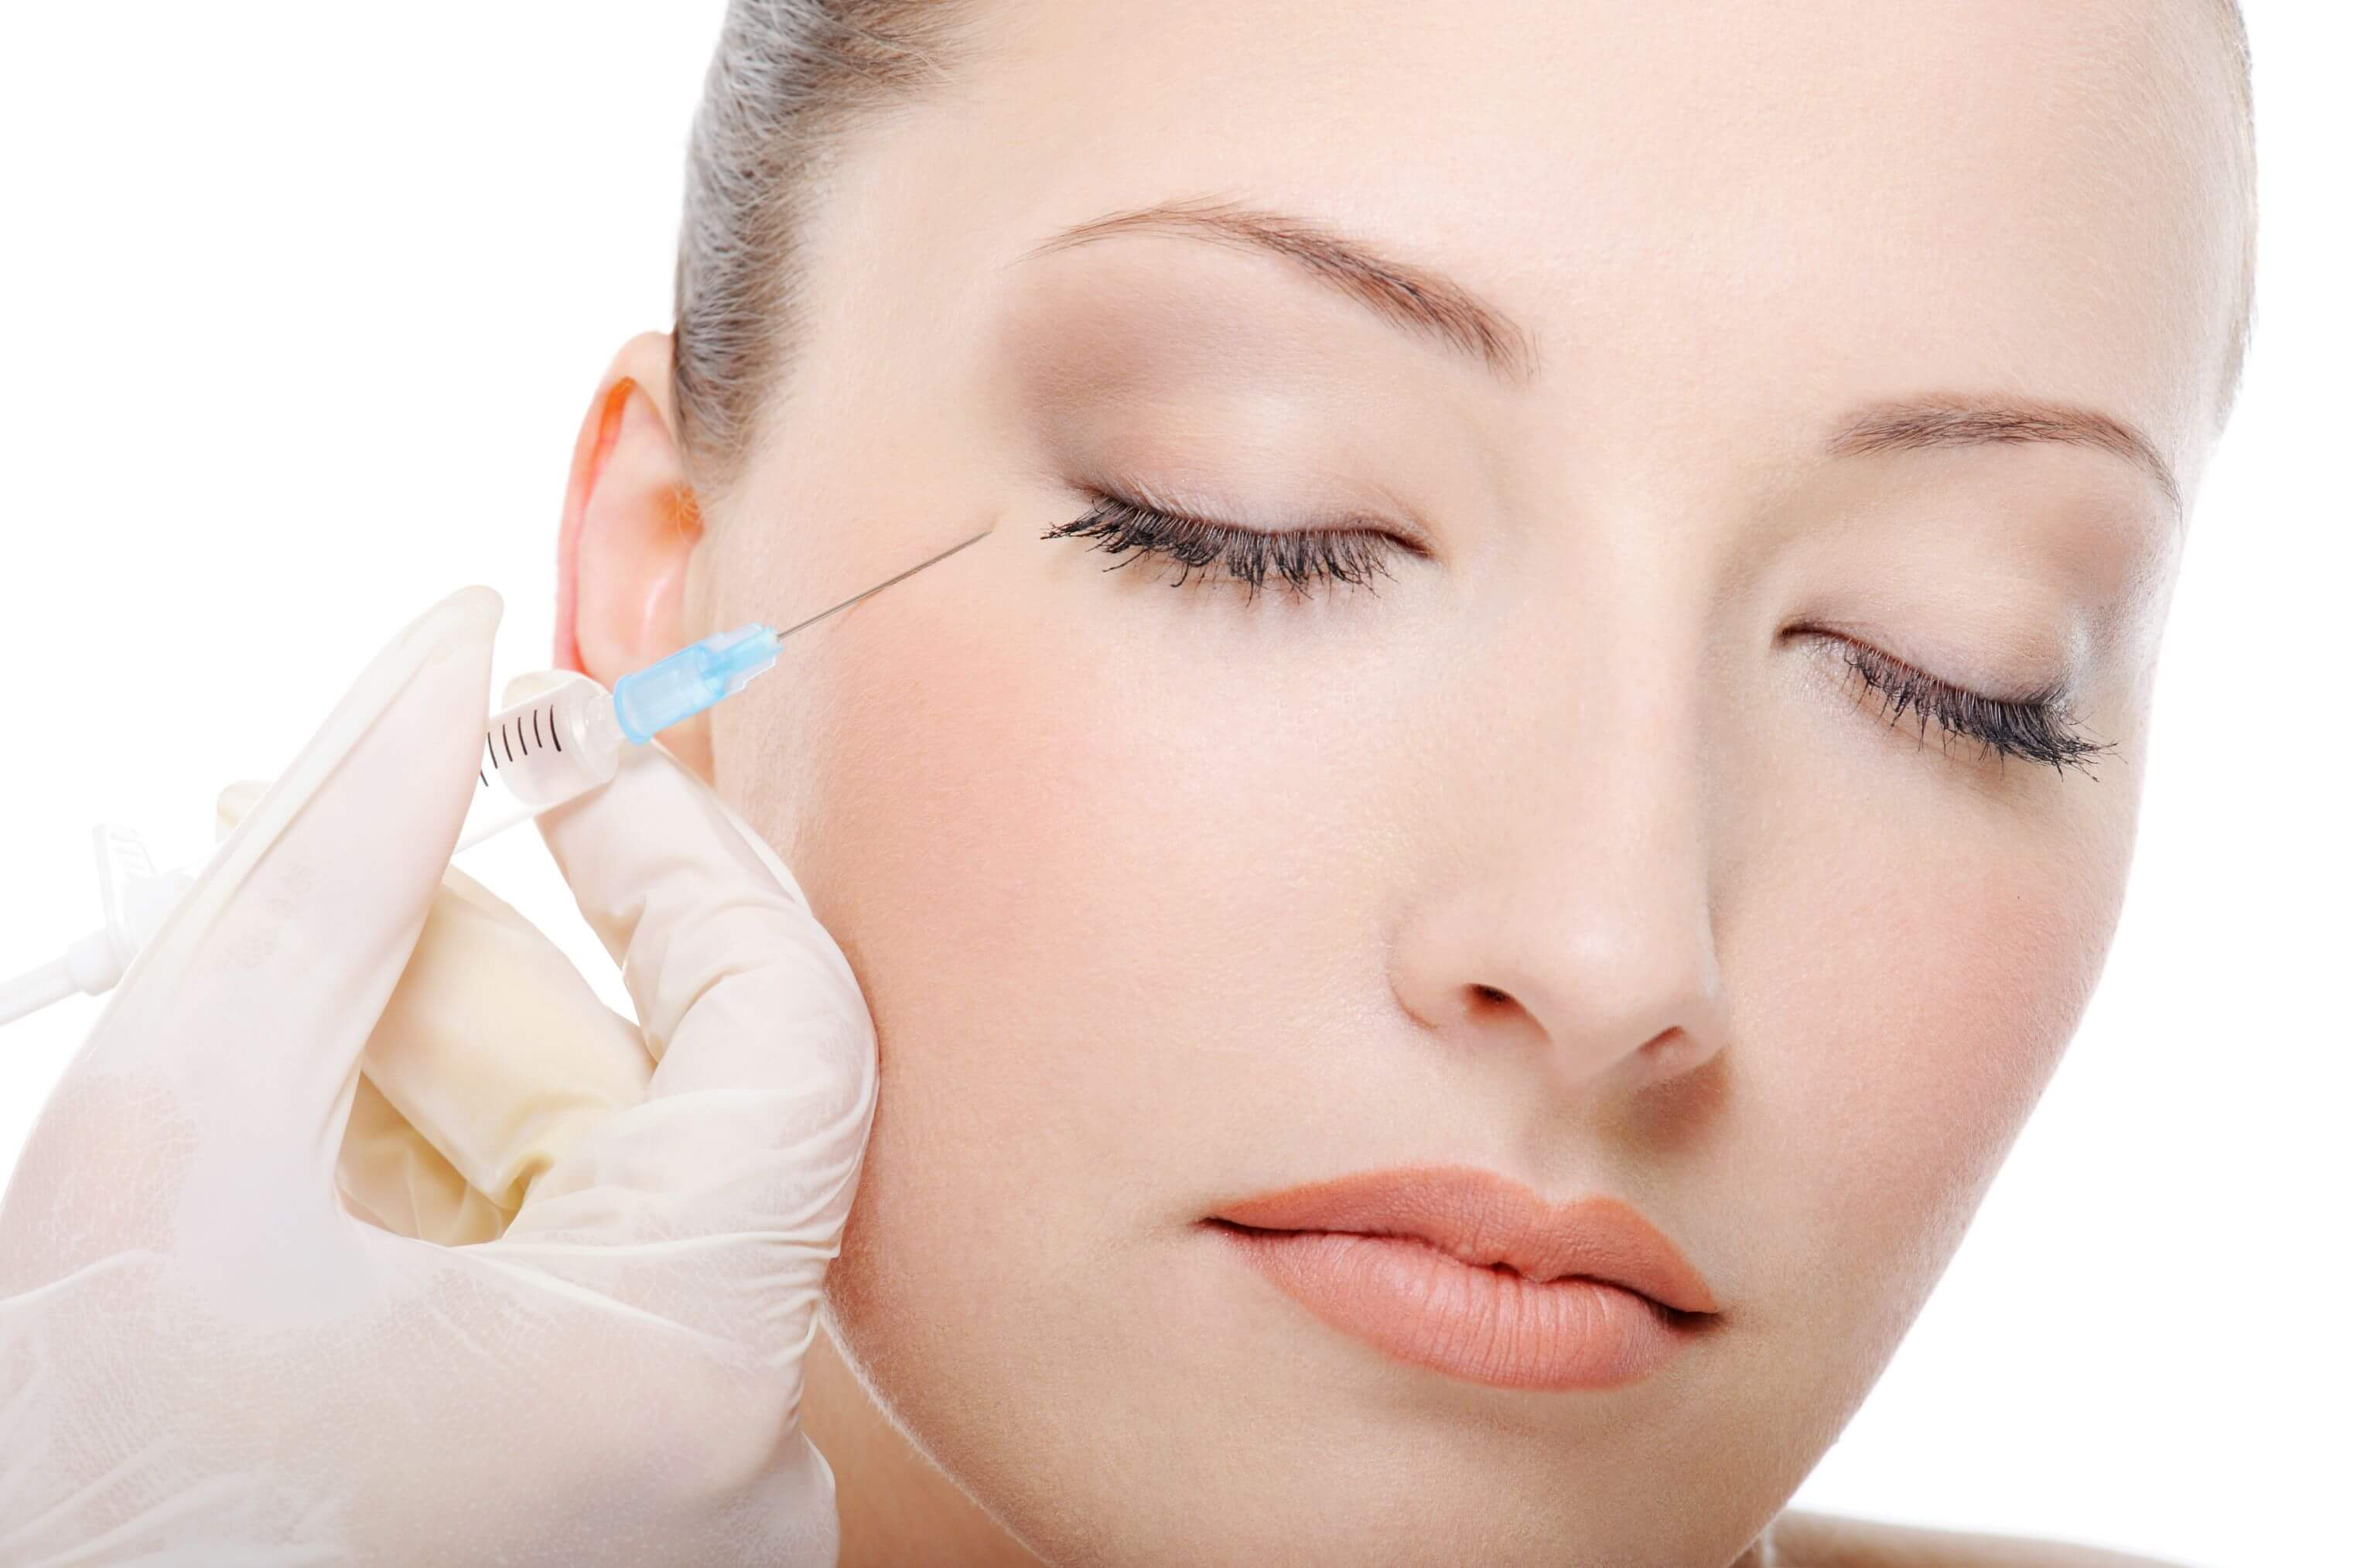 Facial Fillers & The COVID-19 Vaccine